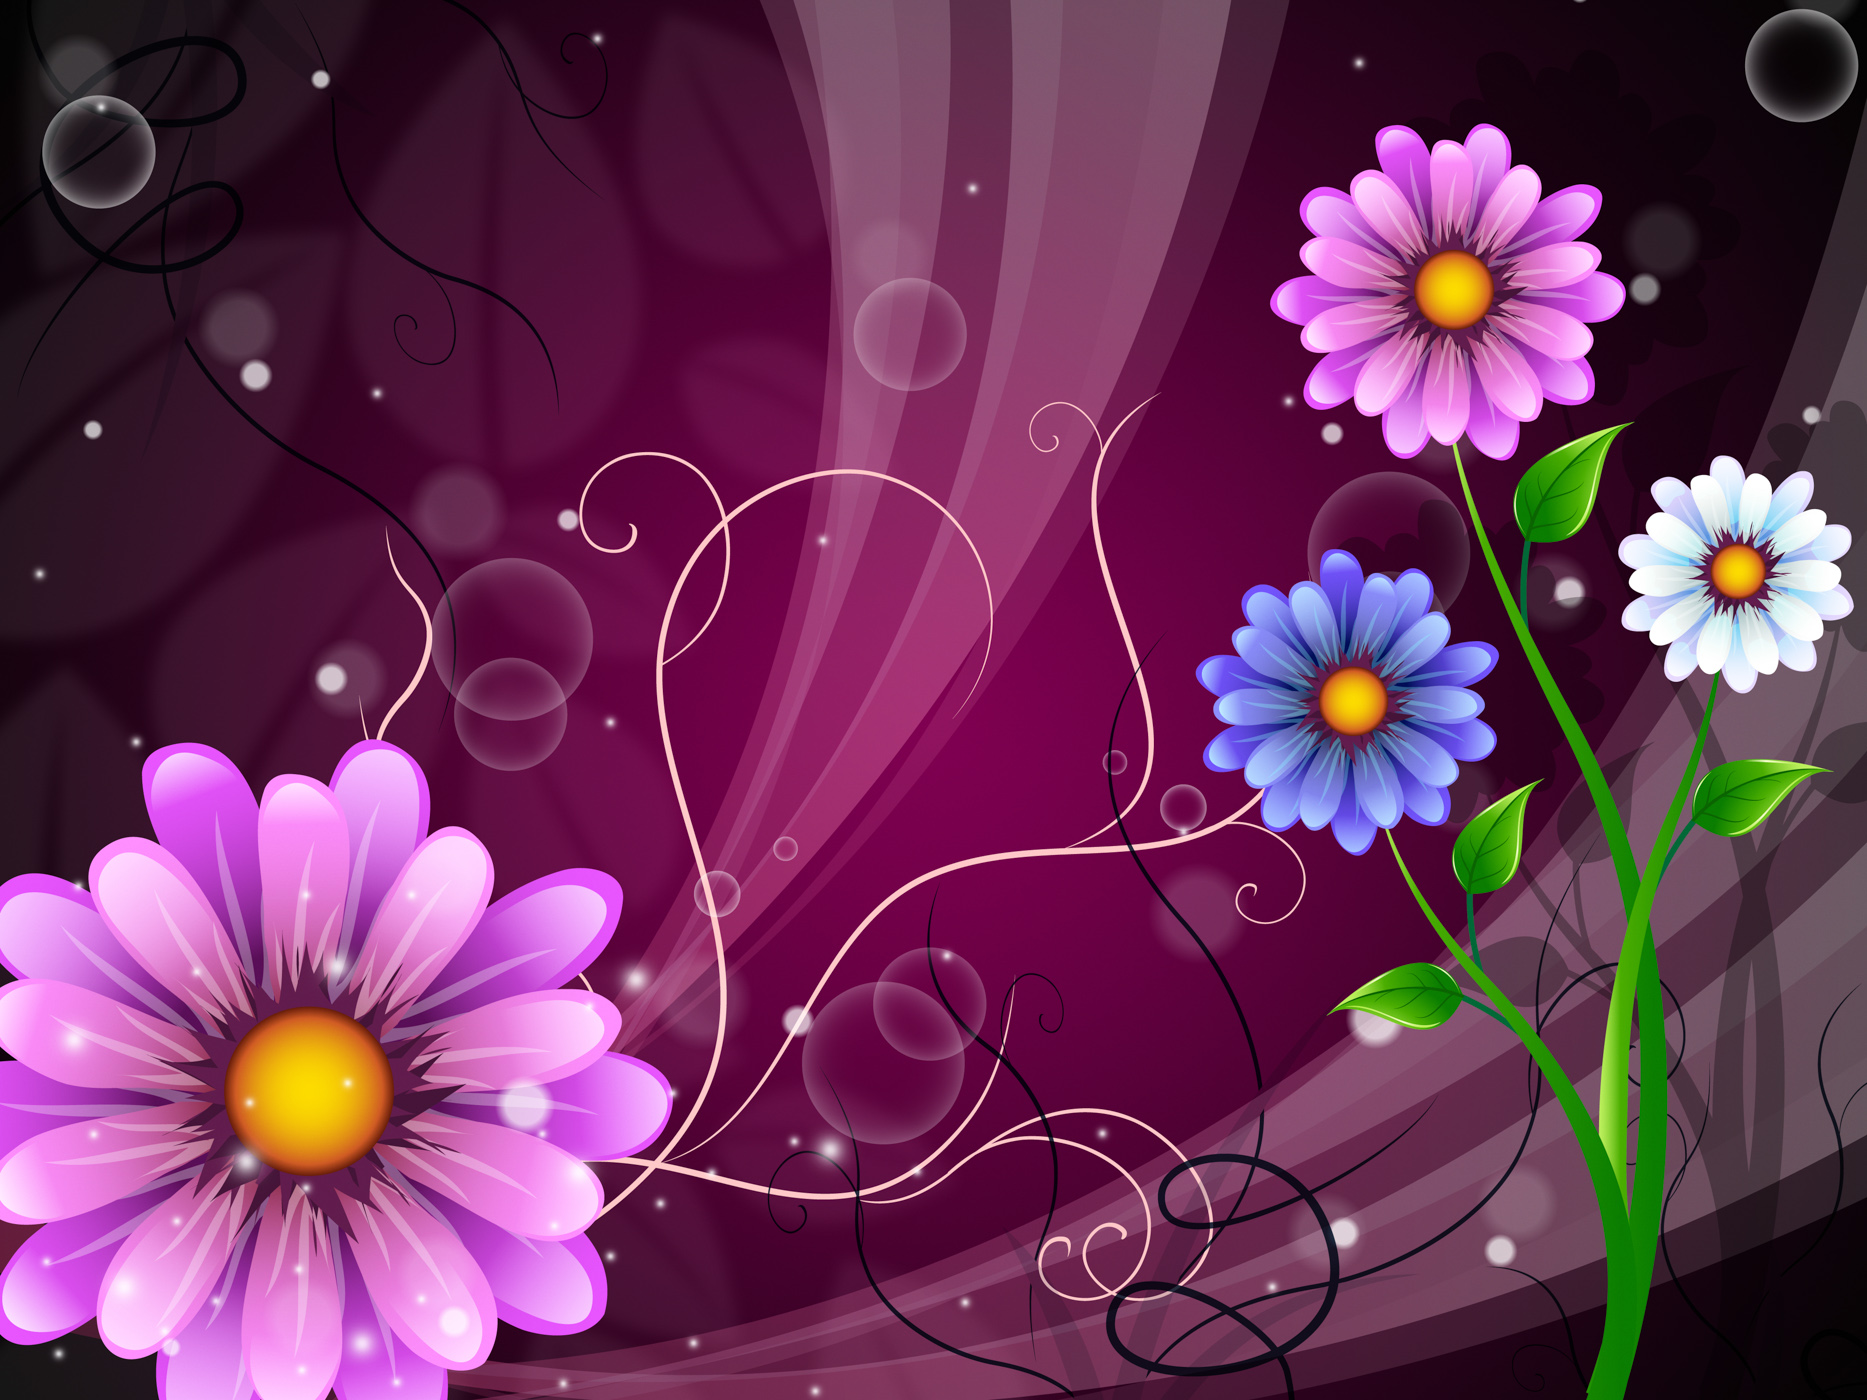 Flowers background shows outdoors flowering and nature photo